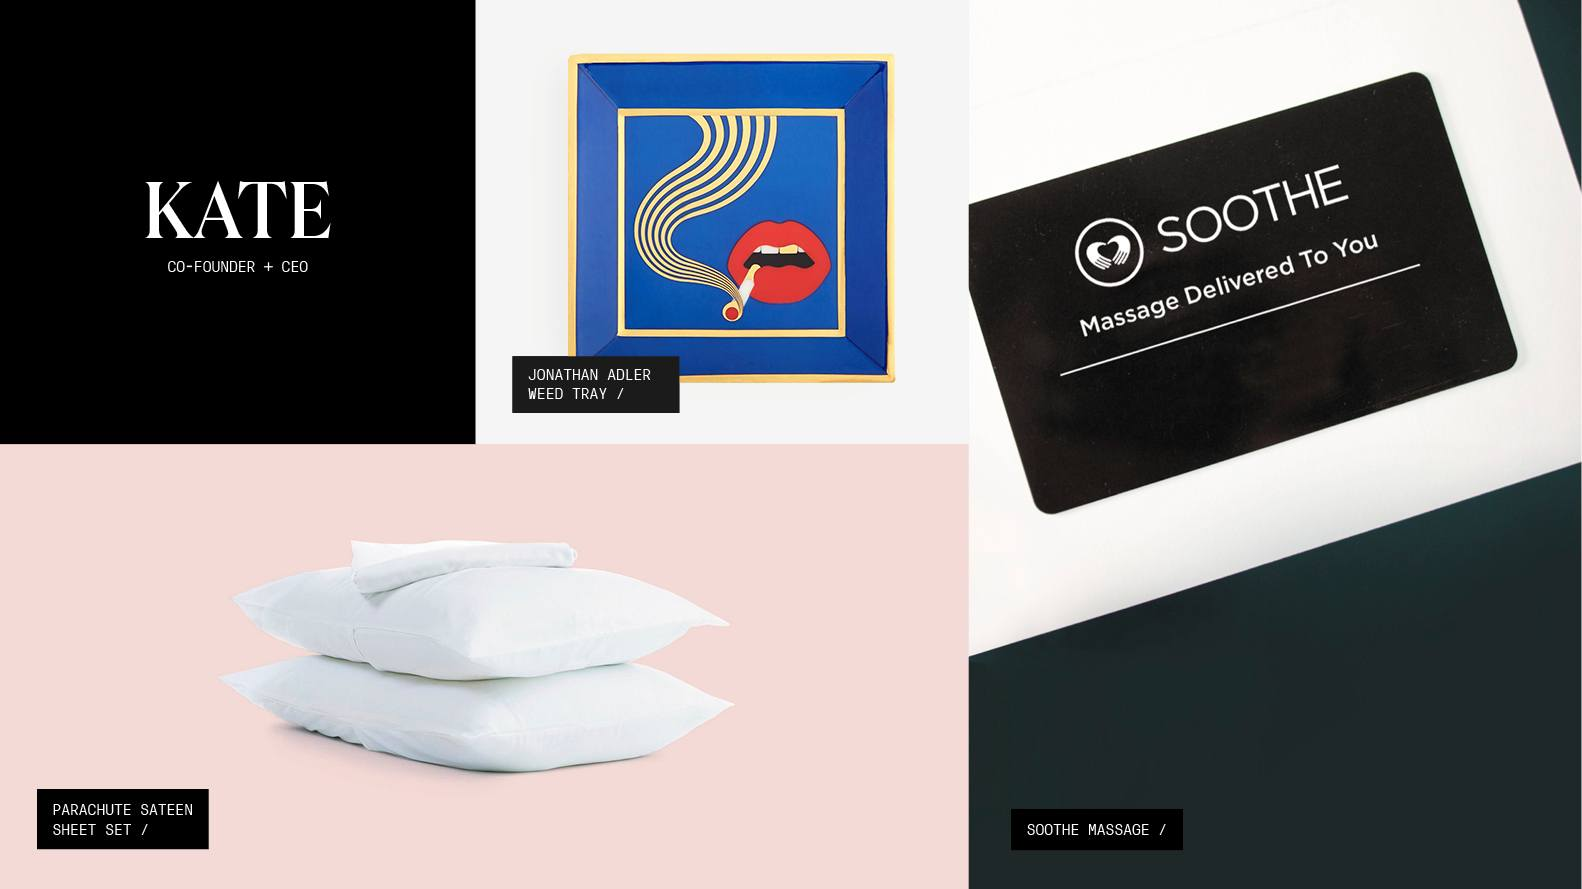 A roundup of gift picks including a sheet set, a ceramic ash tray, and a Sooth Massage gift card.